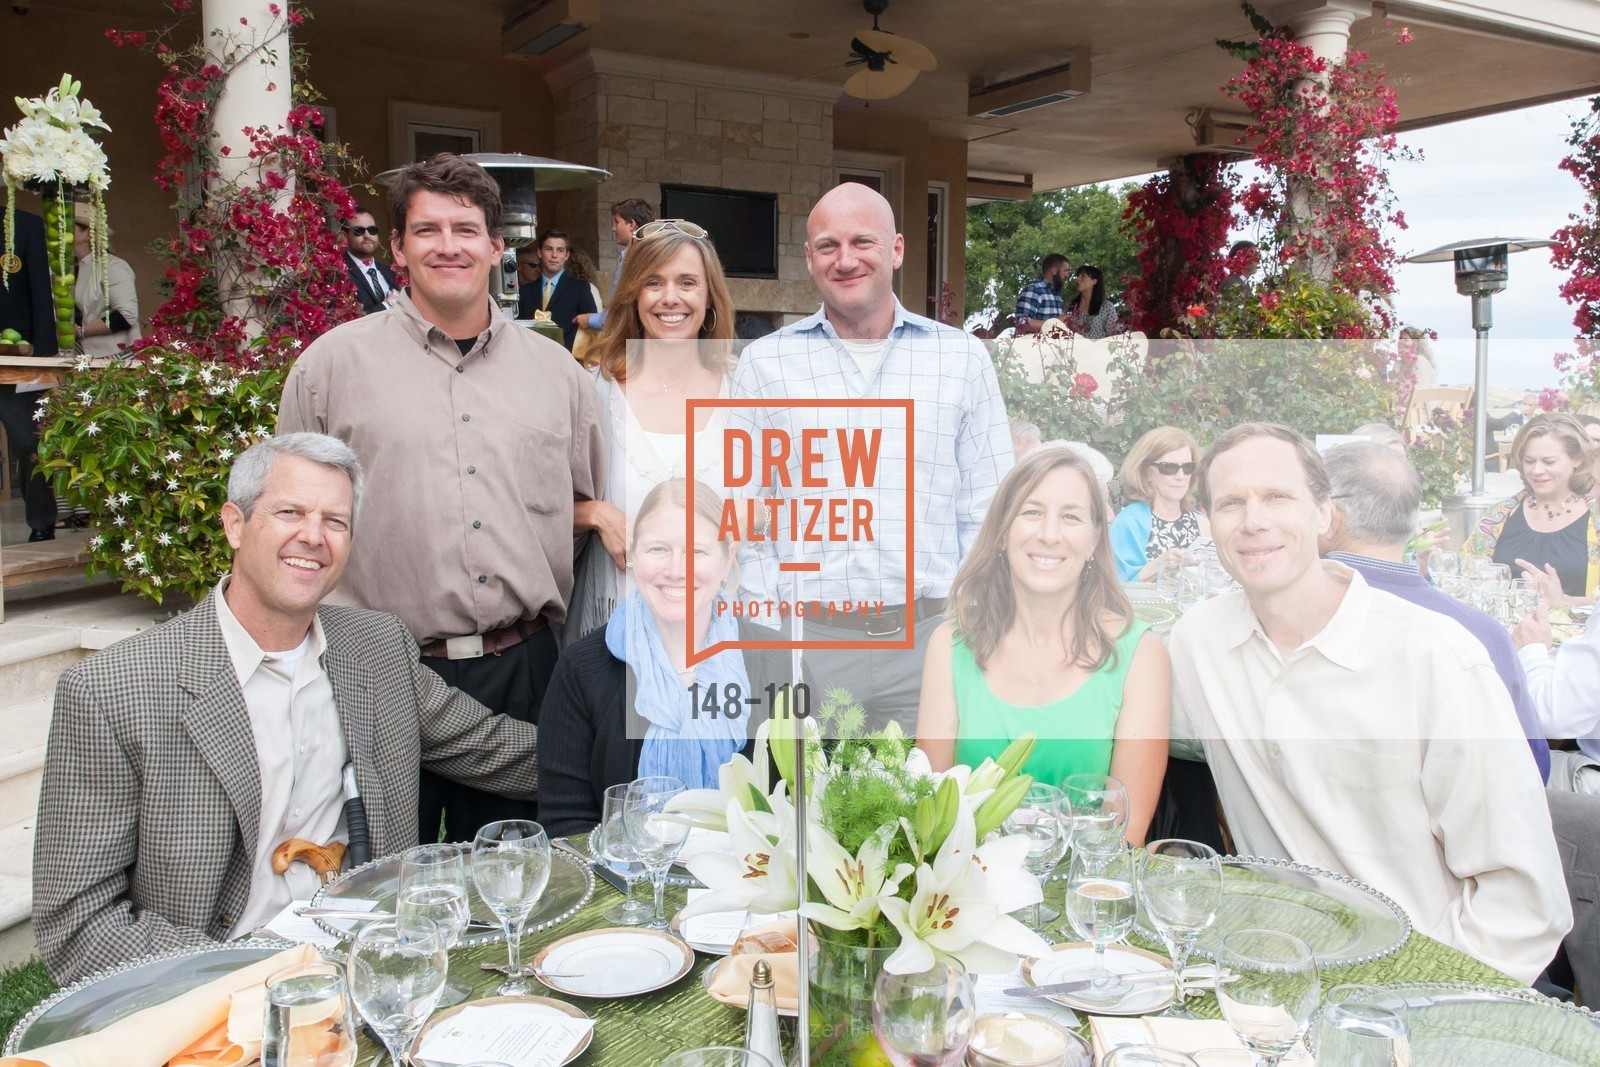 Scott Athearn, Nate Nieto, Liz Horn, Camille Athearn, Dan Salkeld, Lia Gaertner, Sanjya Schweig, LYME AID 2015 Benefiting the Bay Area Lyme Foundation, Private Residence, May 16th, 2015,Drew Altizer, Drew Altizer Photography, full-service agency, private events, San Francisco photographer, photographer california